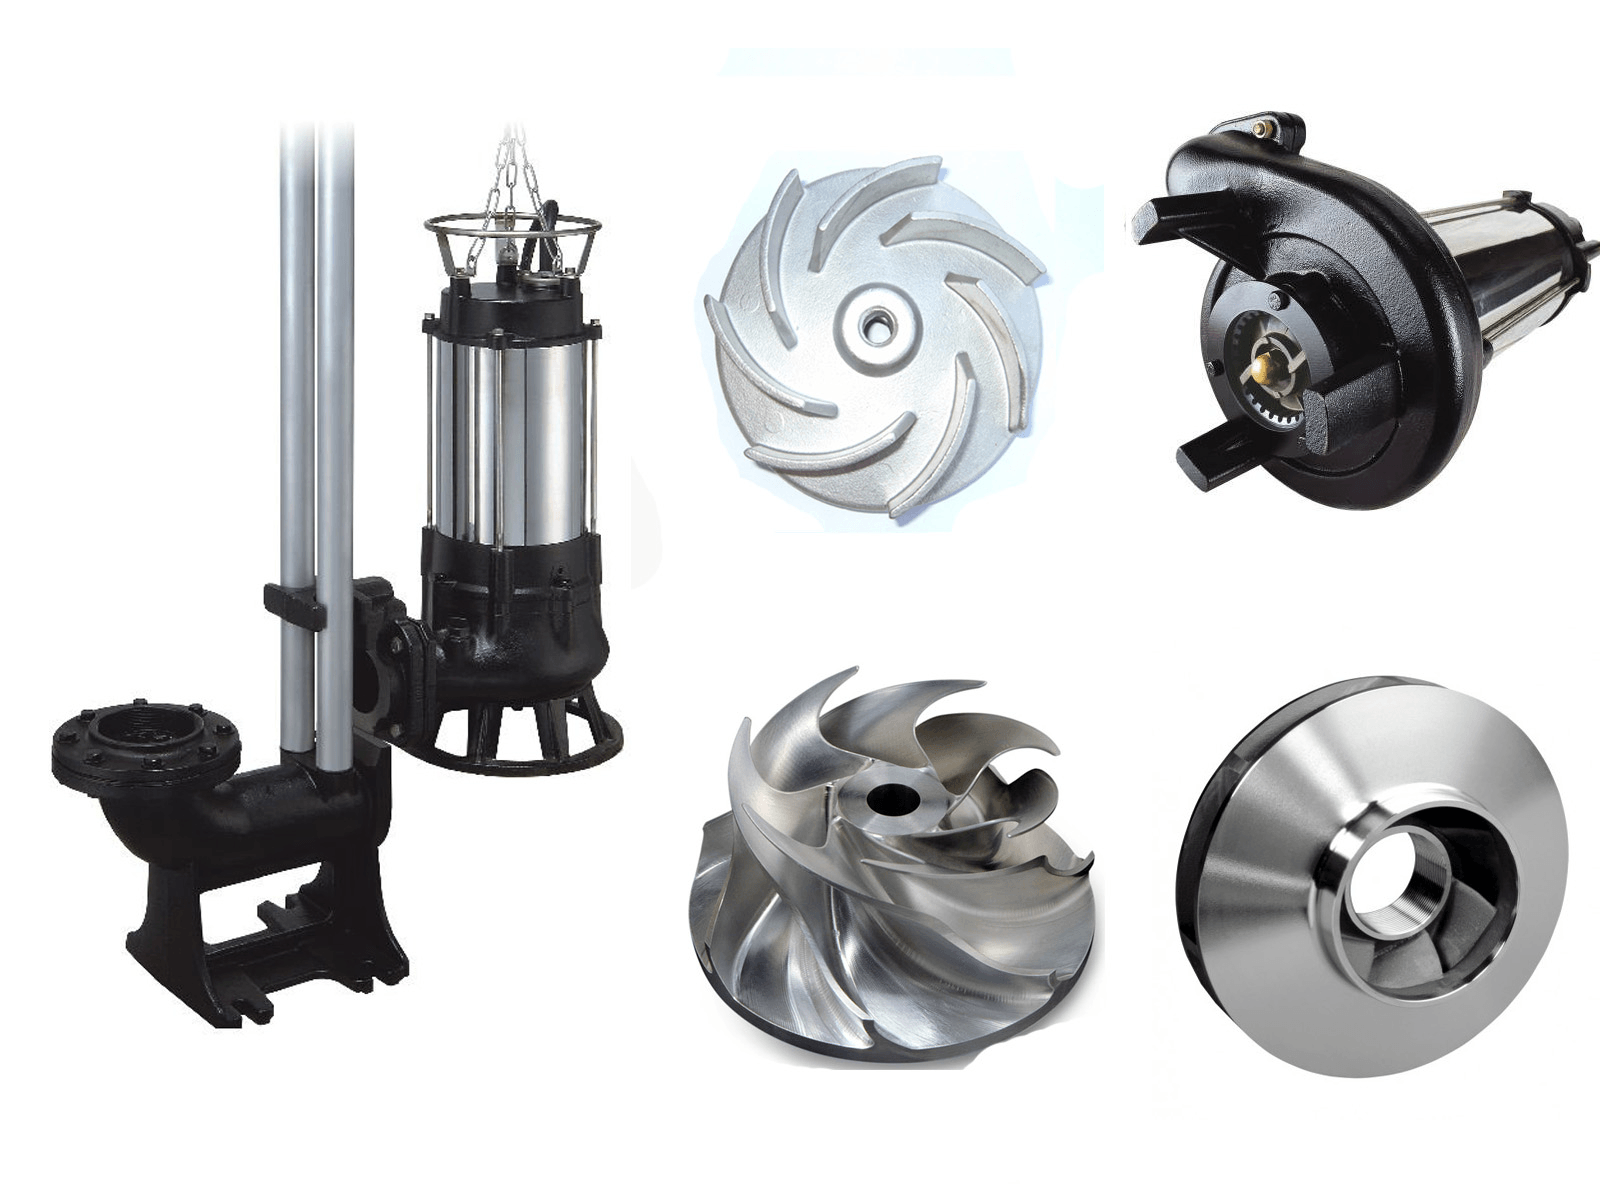 Grinder pump cutting blades and fittings from Shanghai Pacific Pump Manufacture Co., Ltd.